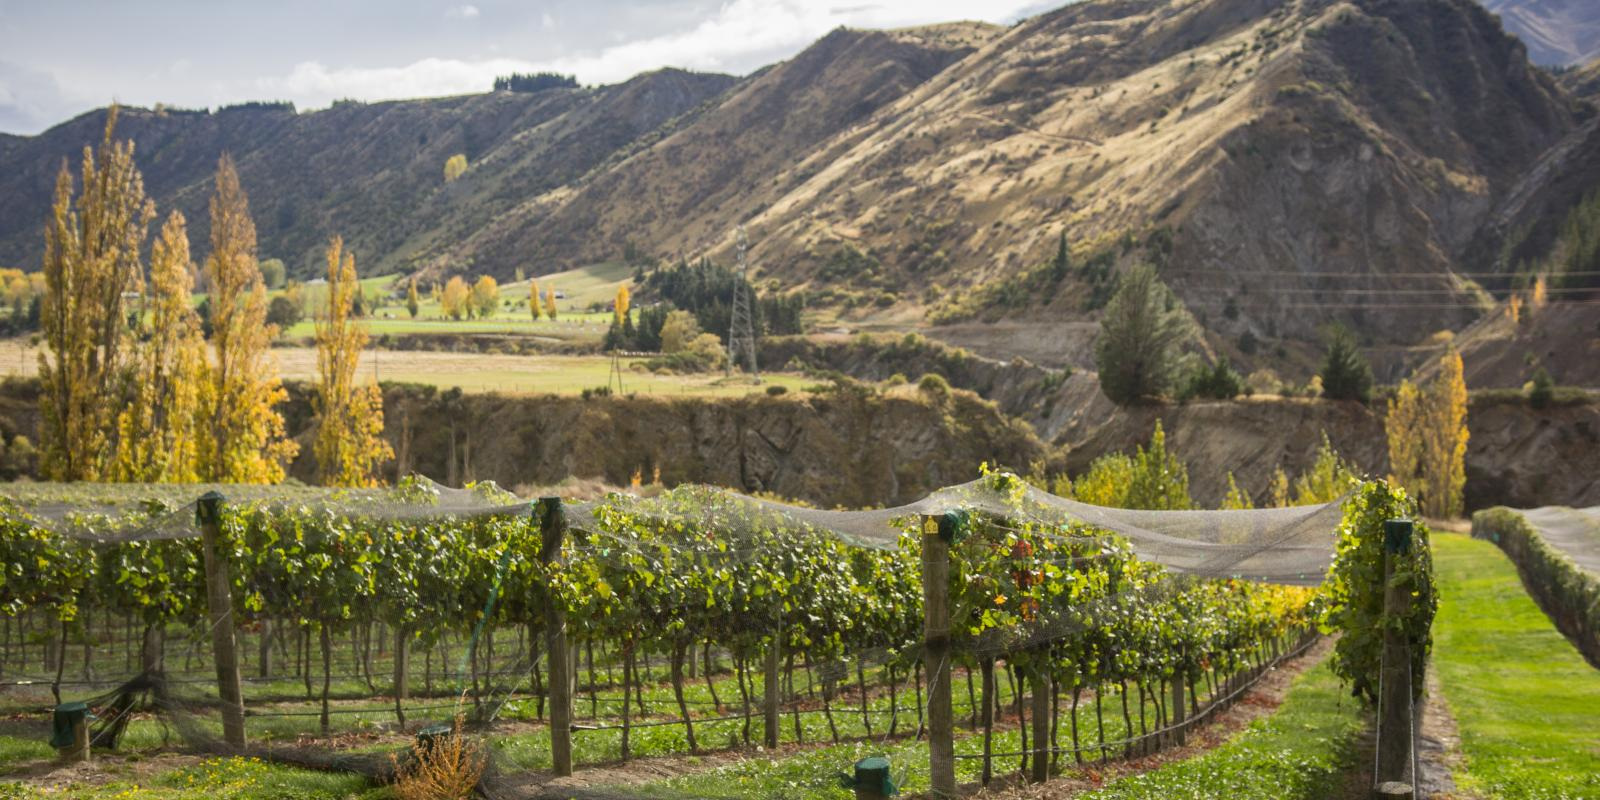 The history of wine in Queenstown